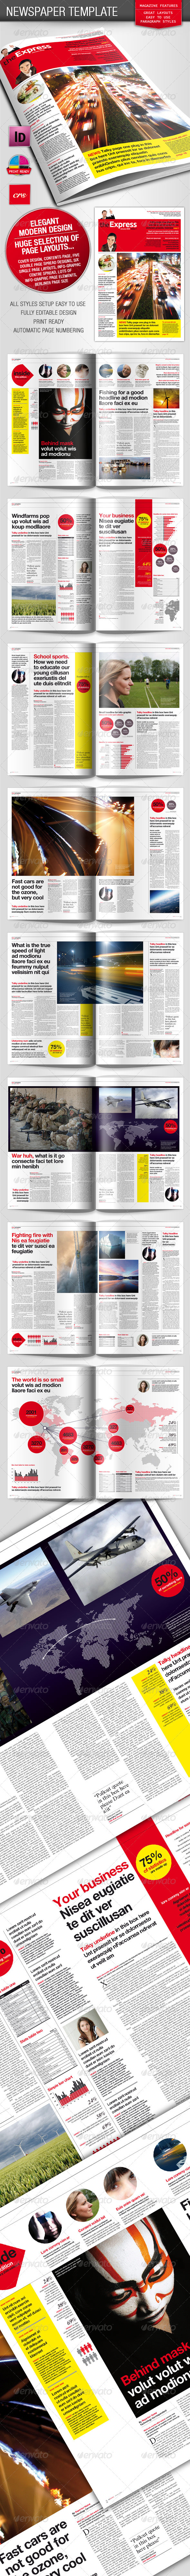 Berliner Newspaper/Magazine Template - Magazines Print Templates